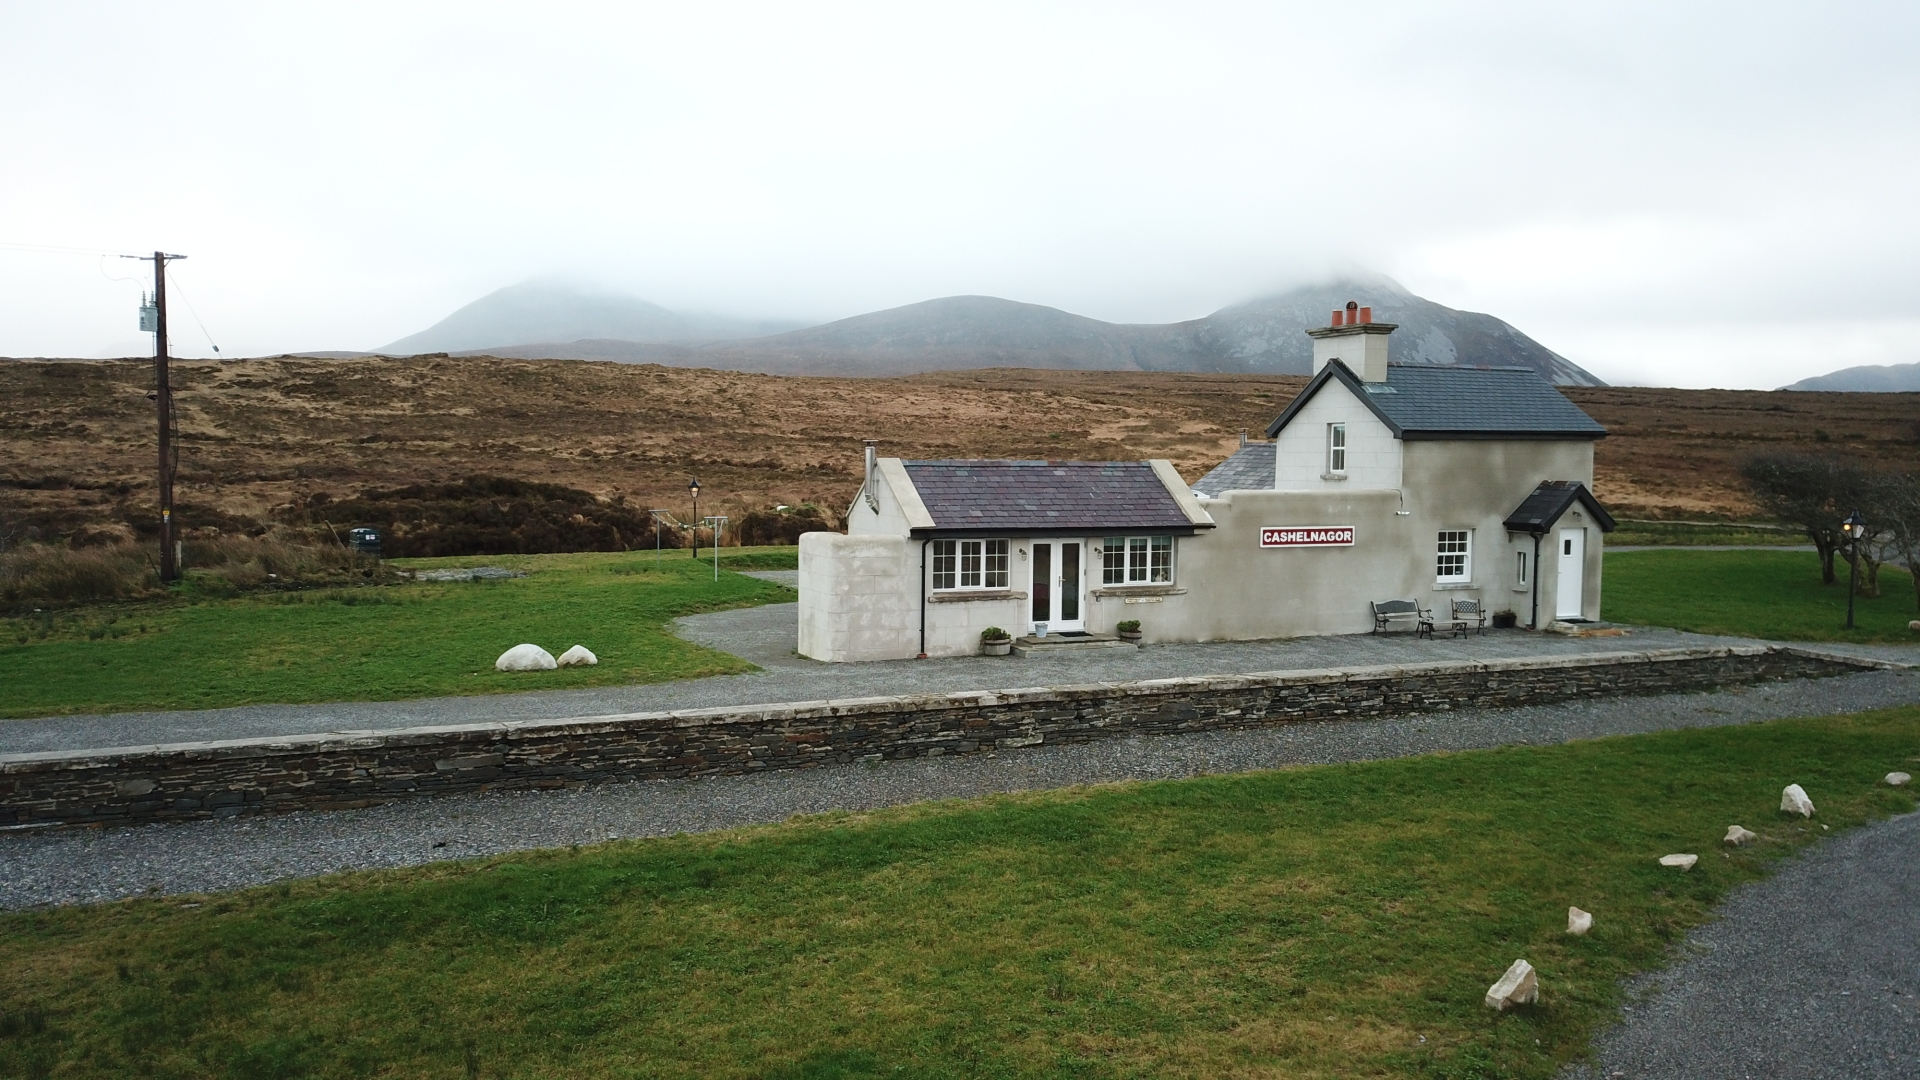 The old Cashelnagore Station was renovated several years ago